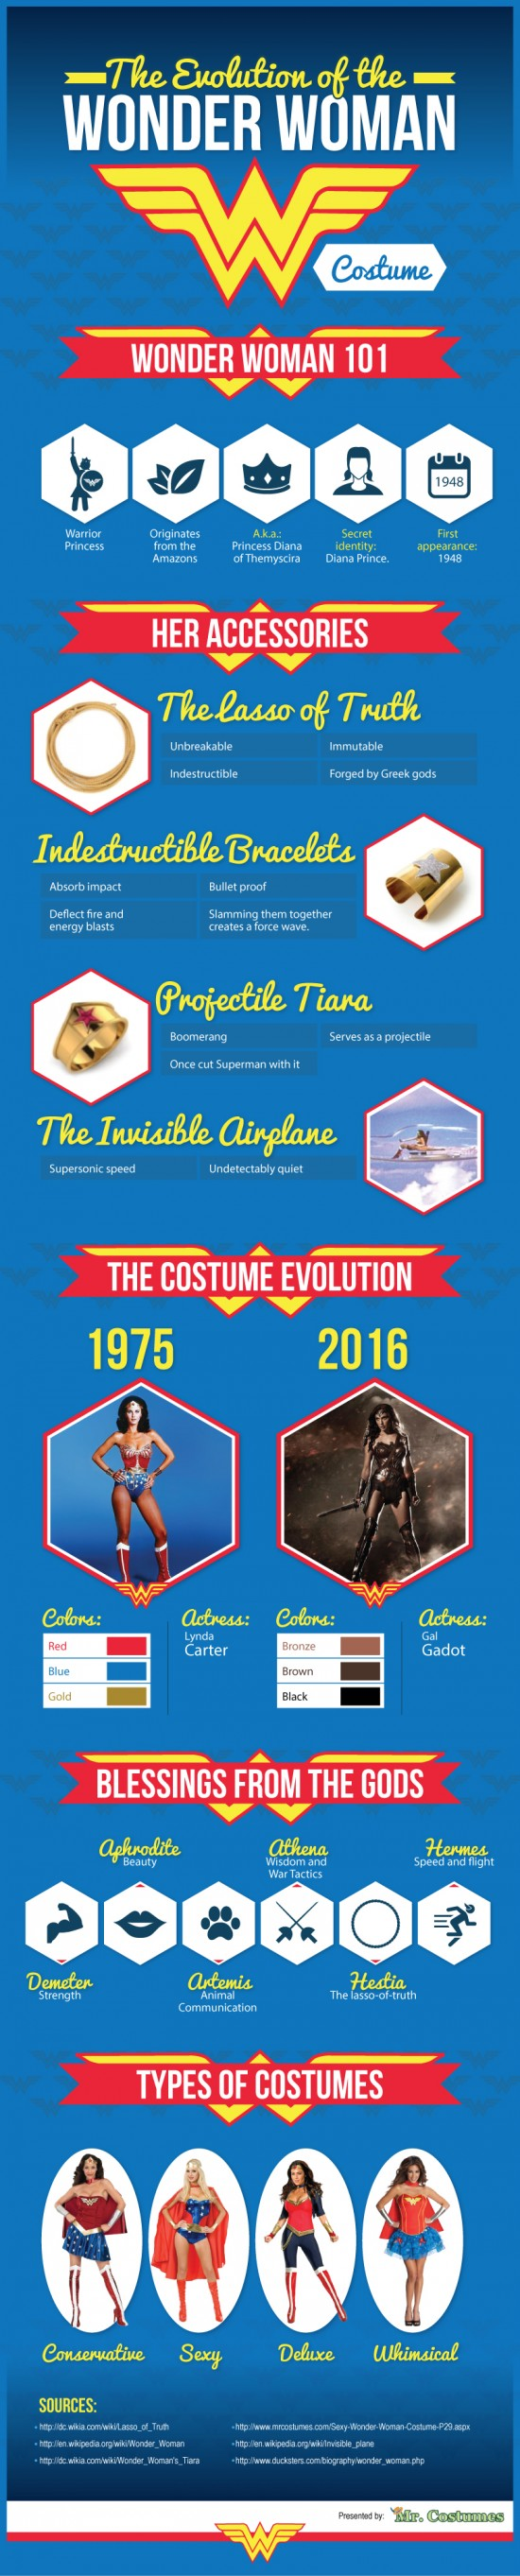 The Evolution of the Wonder Woman Costume